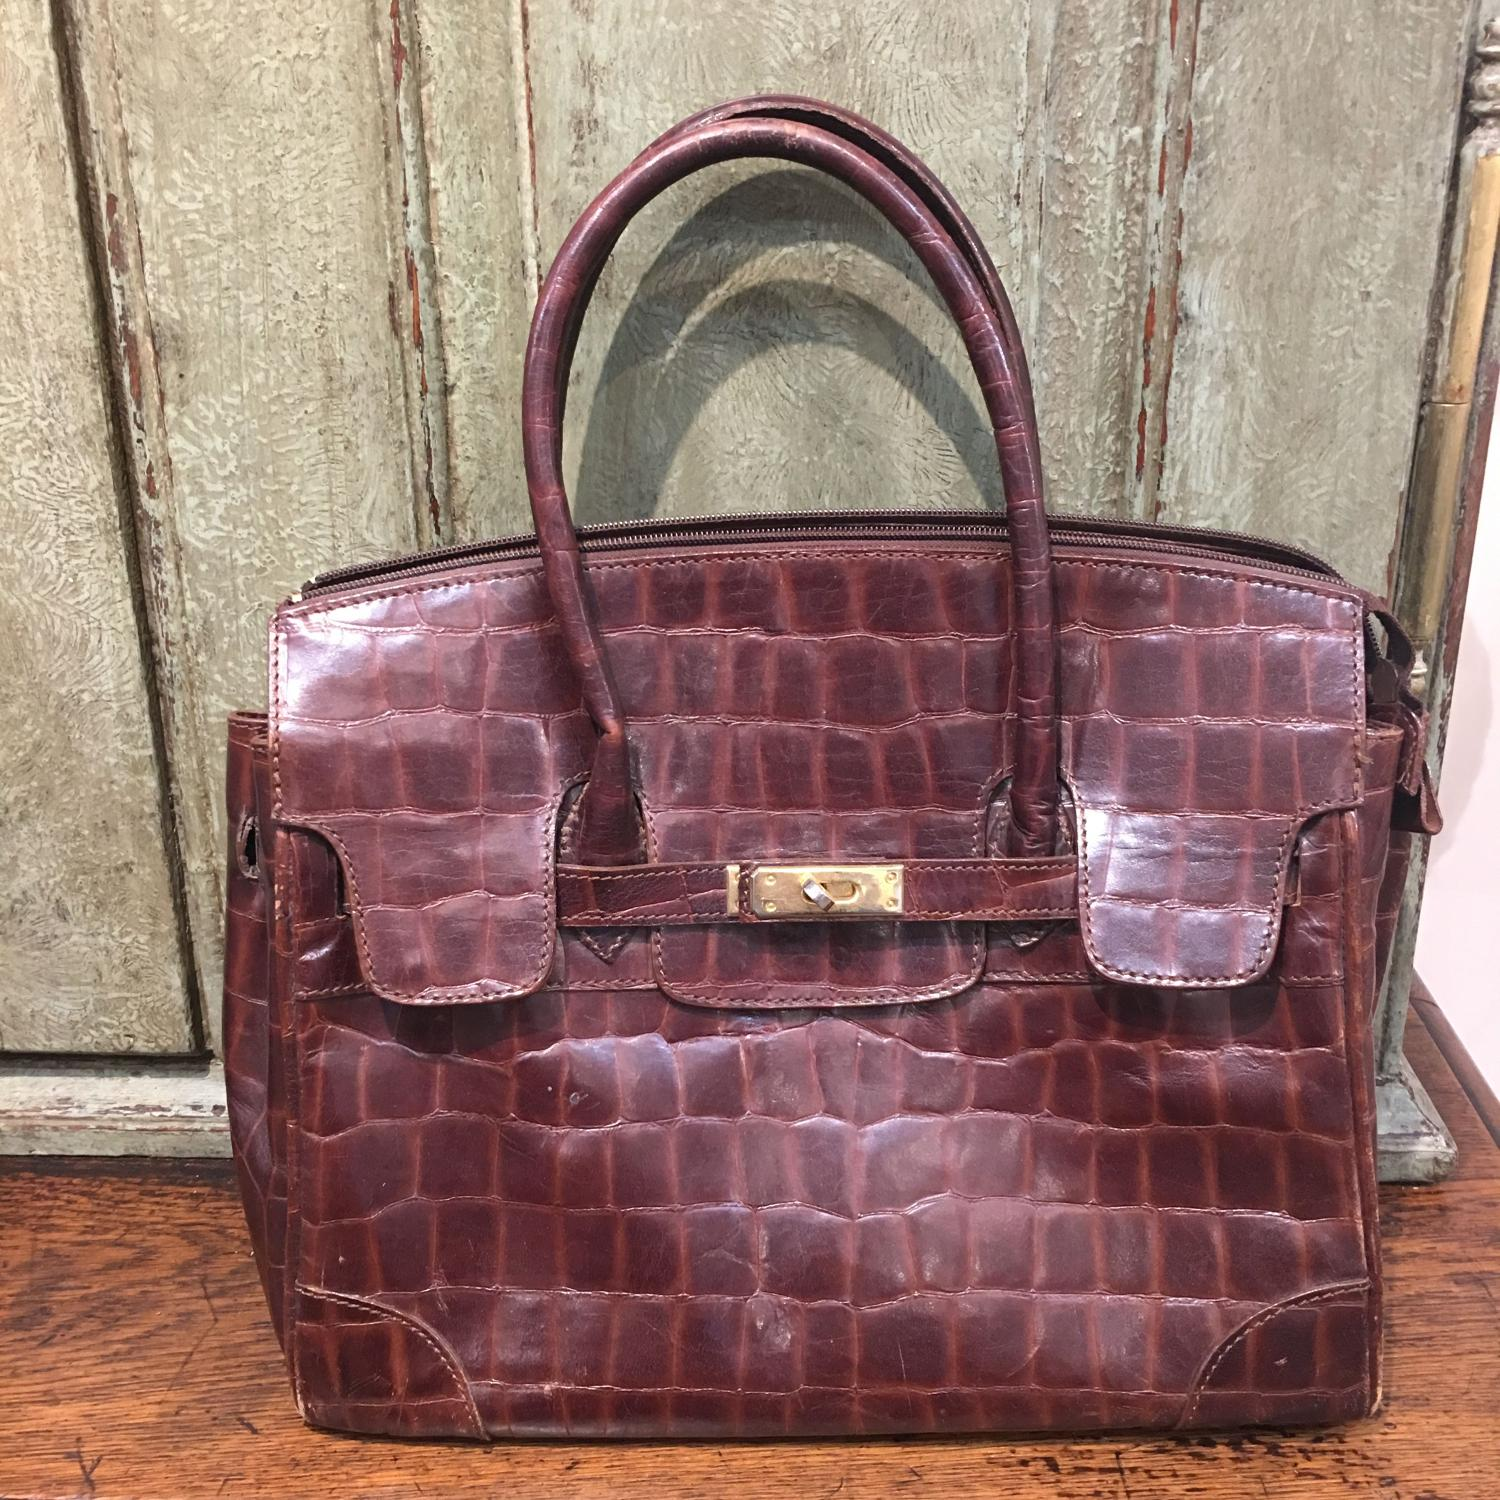 Brown crocograin leather Birkin style handbag